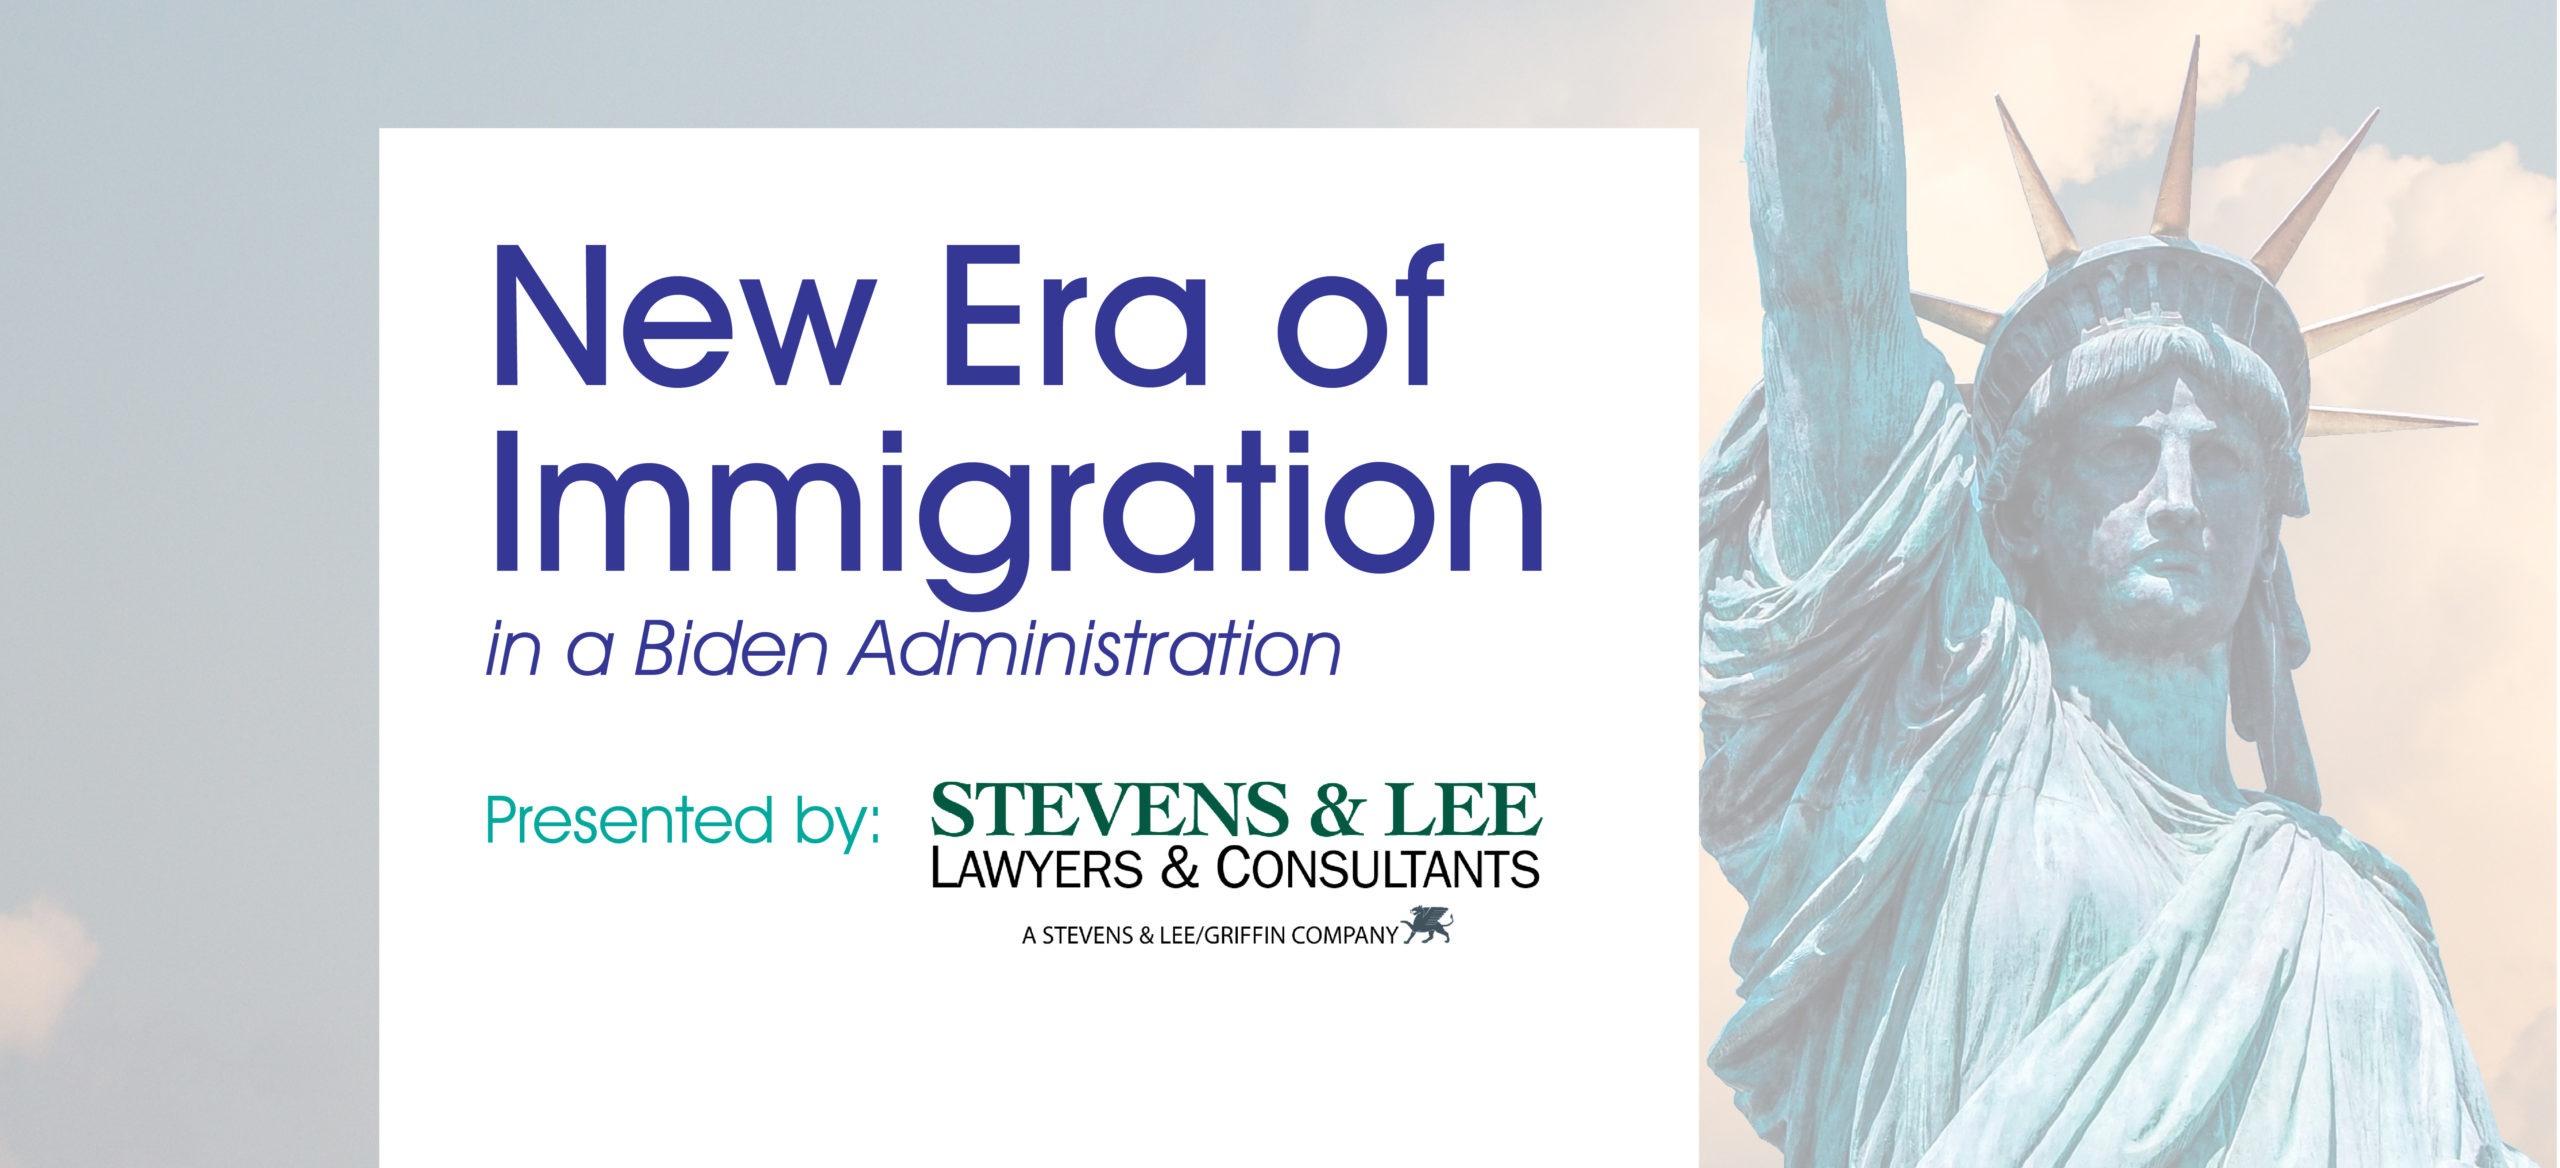 New Era of Immigration in a Biden Administration